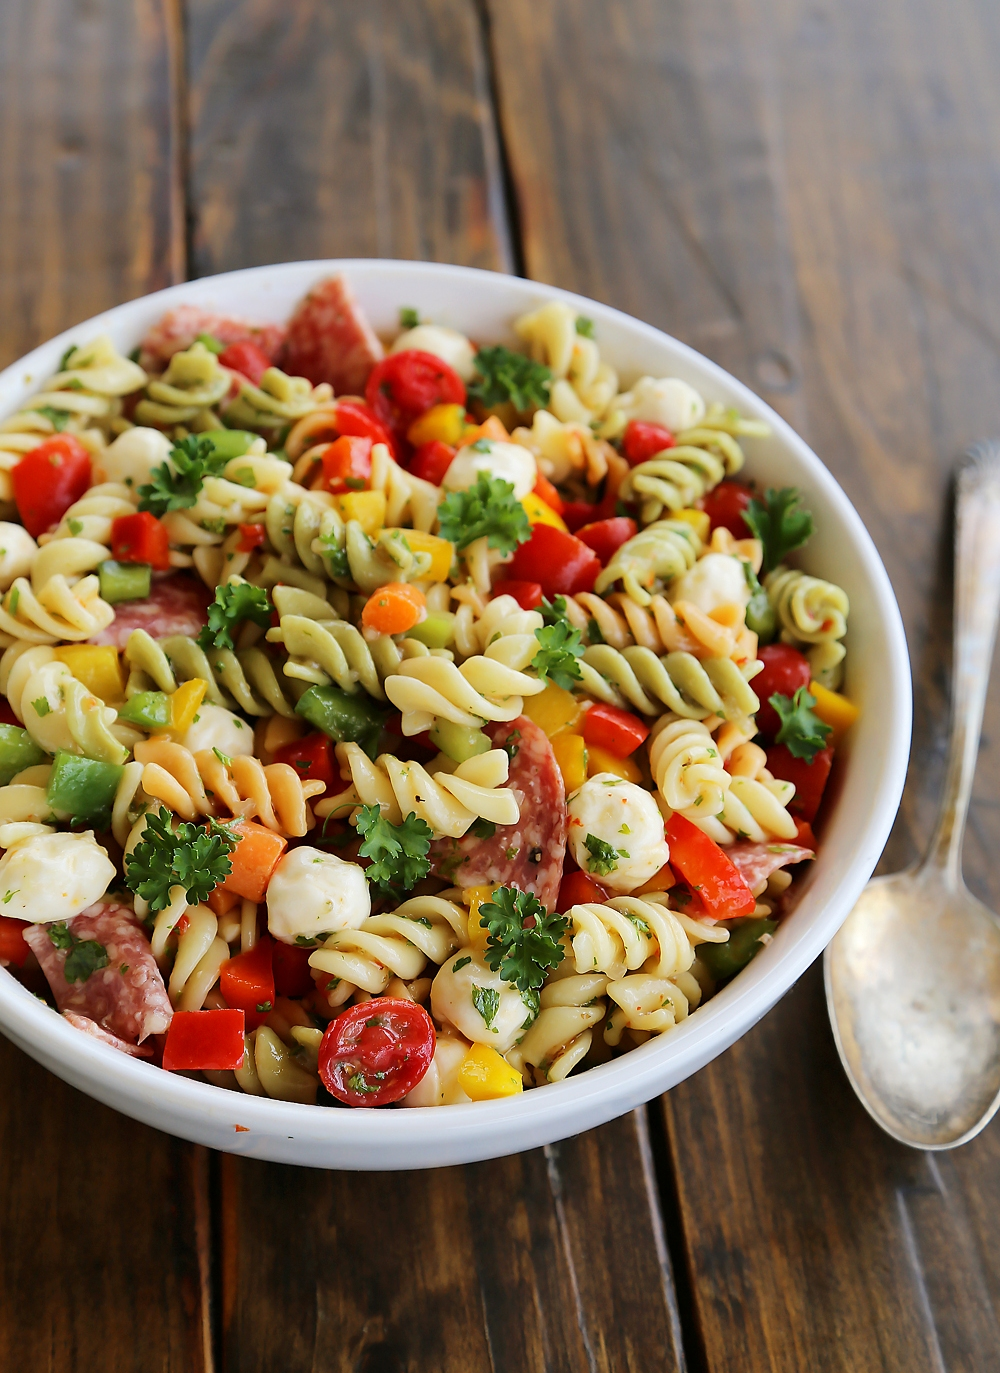 Italian Pasta Salad So Colorful And Flavorful Easy Perfect For Parties